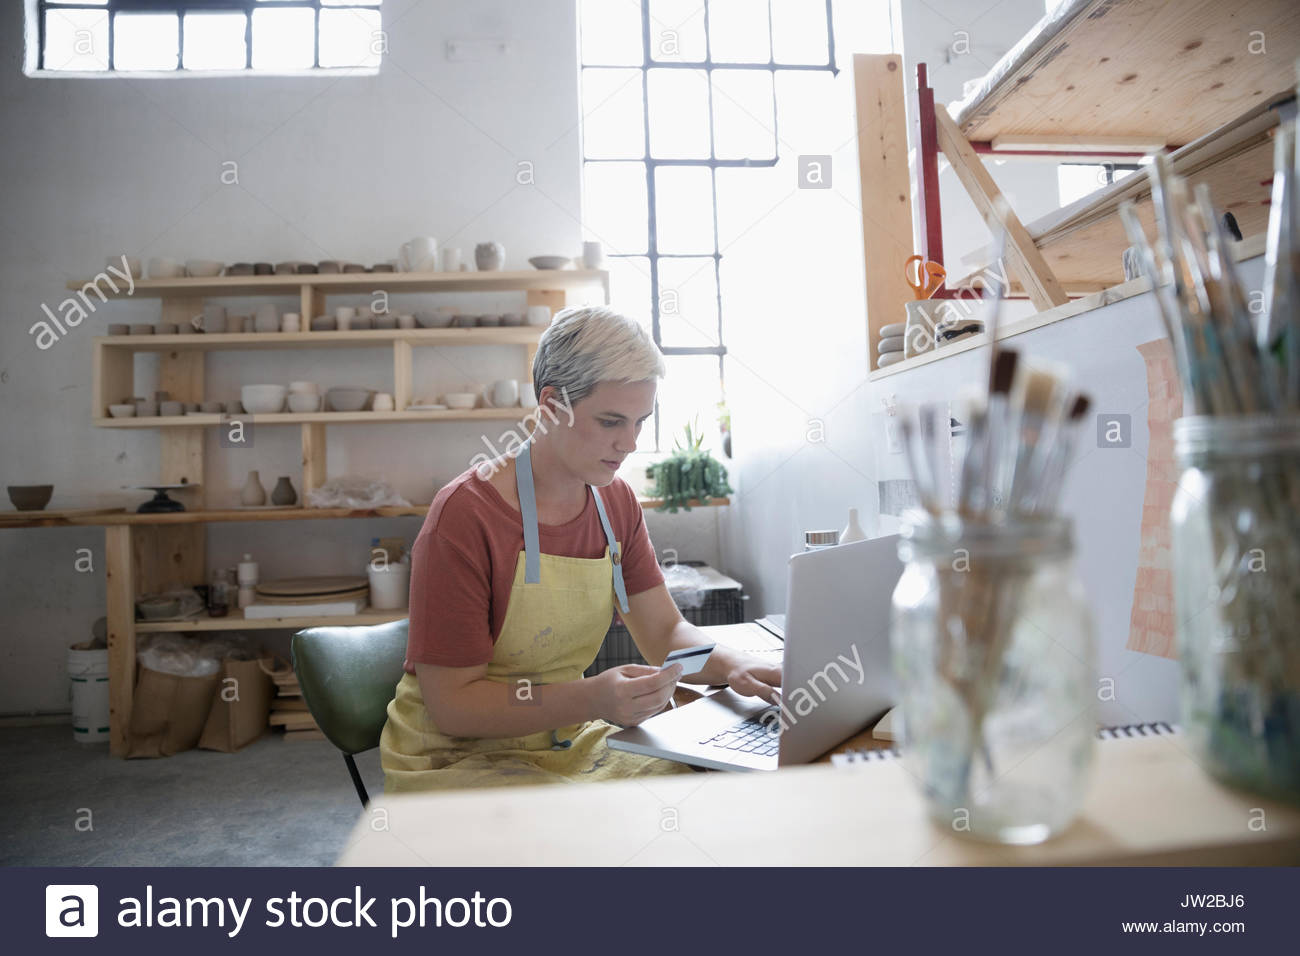 Female potter online shopping, ordering supplies with credit card at laptop in art studio - Stock Image